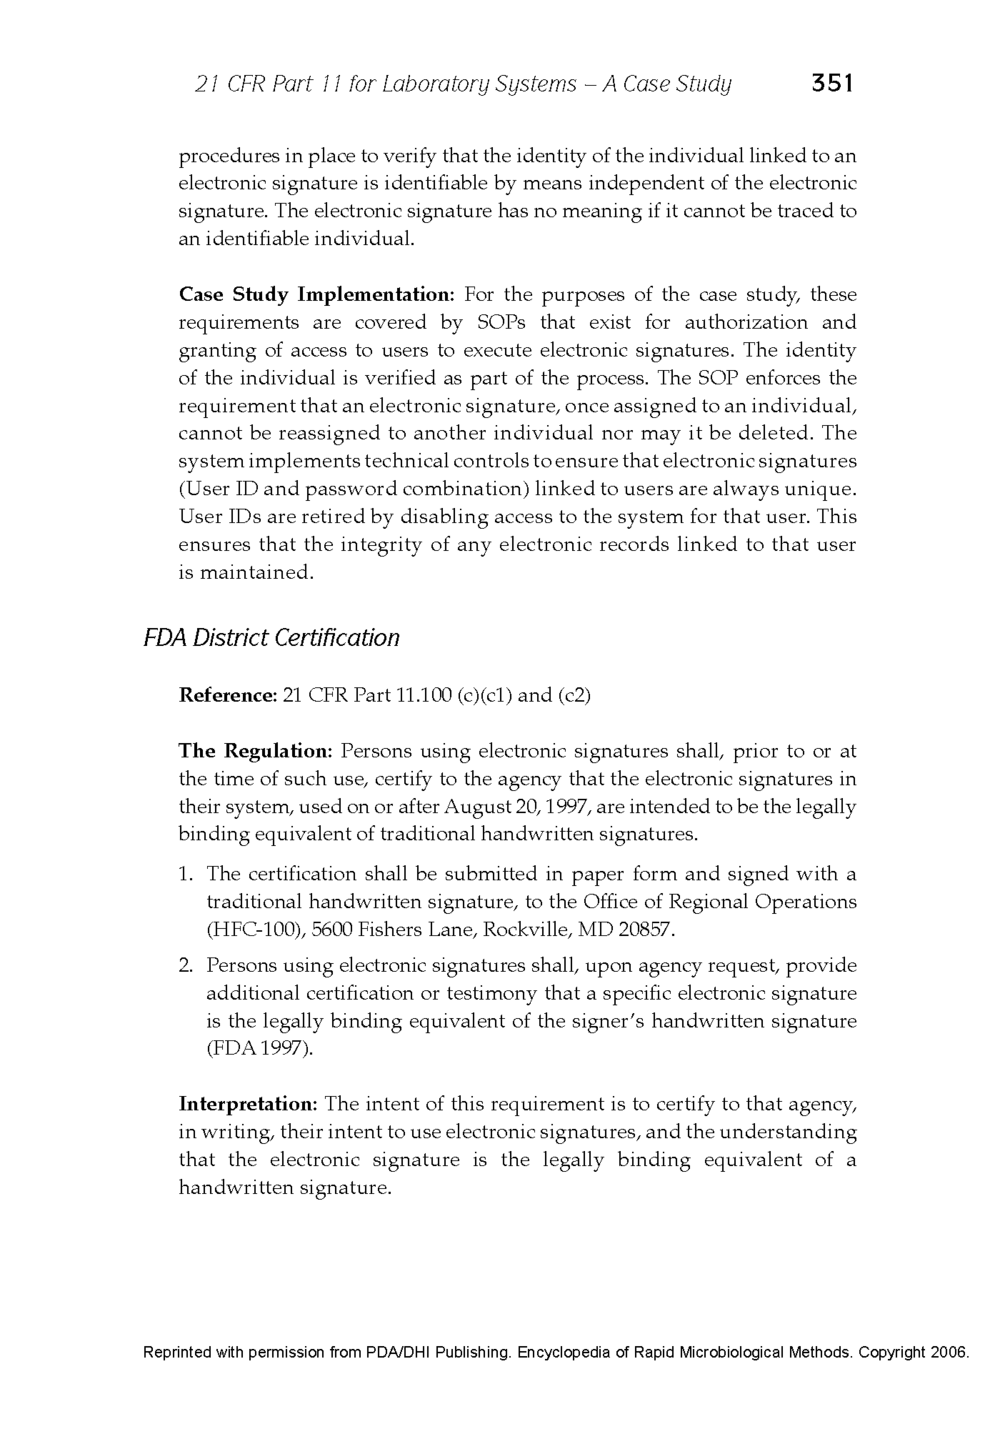 21 CFR Part 11 - Case Study Published in the Encyclopedia of Rapid Microbiological Methods - Volume 1, DHI Publishing_Page_29.png